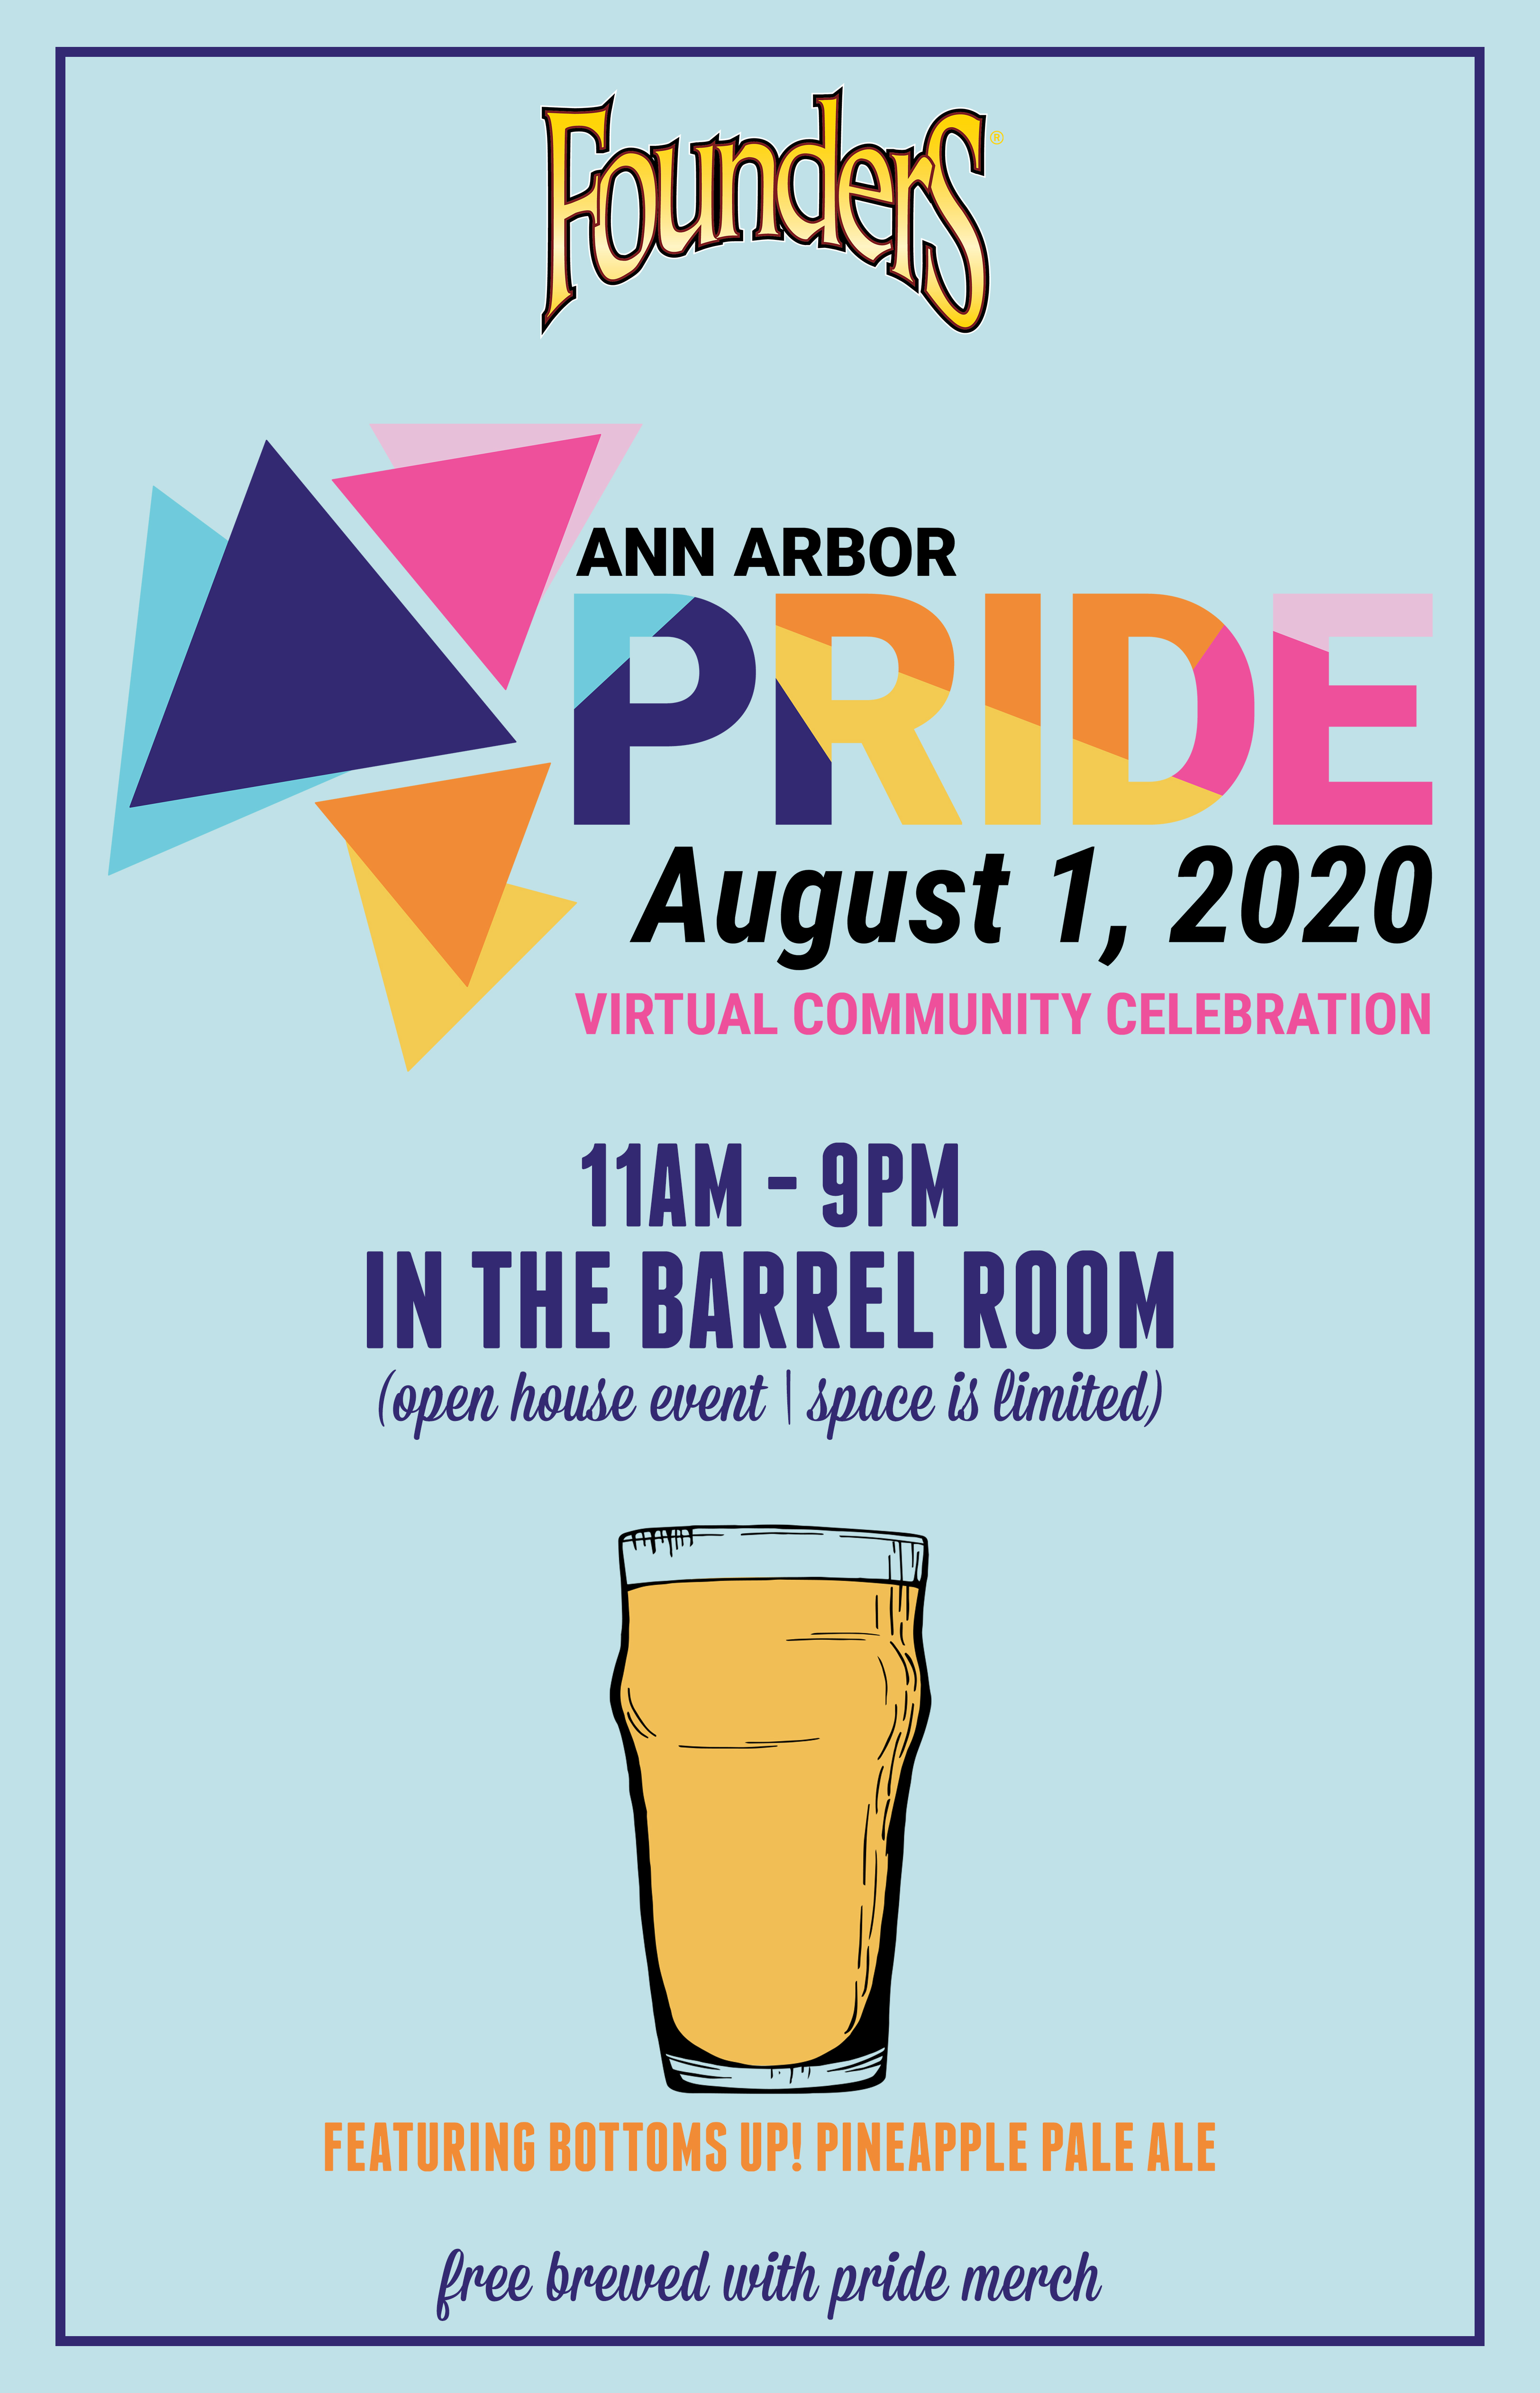 Ann Arbor Pride Virtual Celebration Viewing Party at the Detroit Taproom on August 1 at 11am